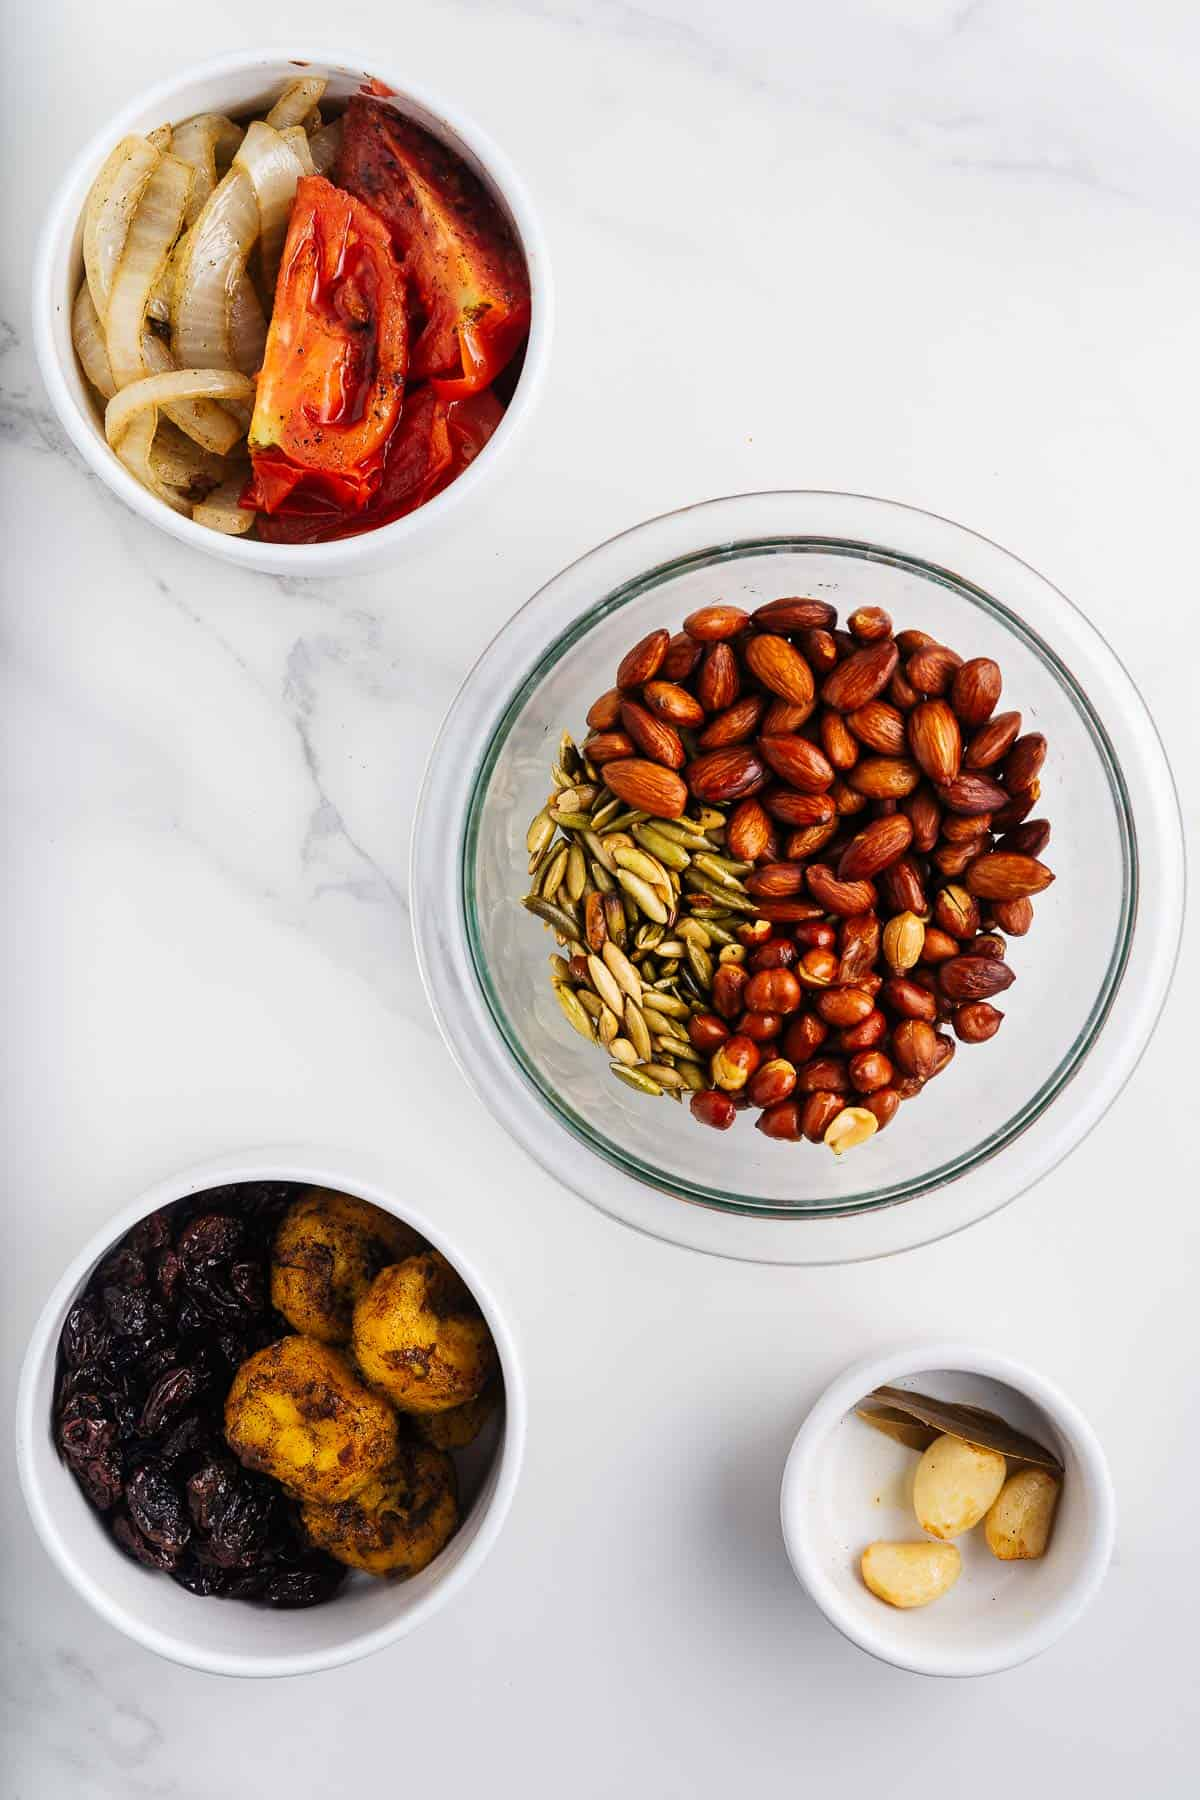 Fried Vegetables, Nuts, and Fruits